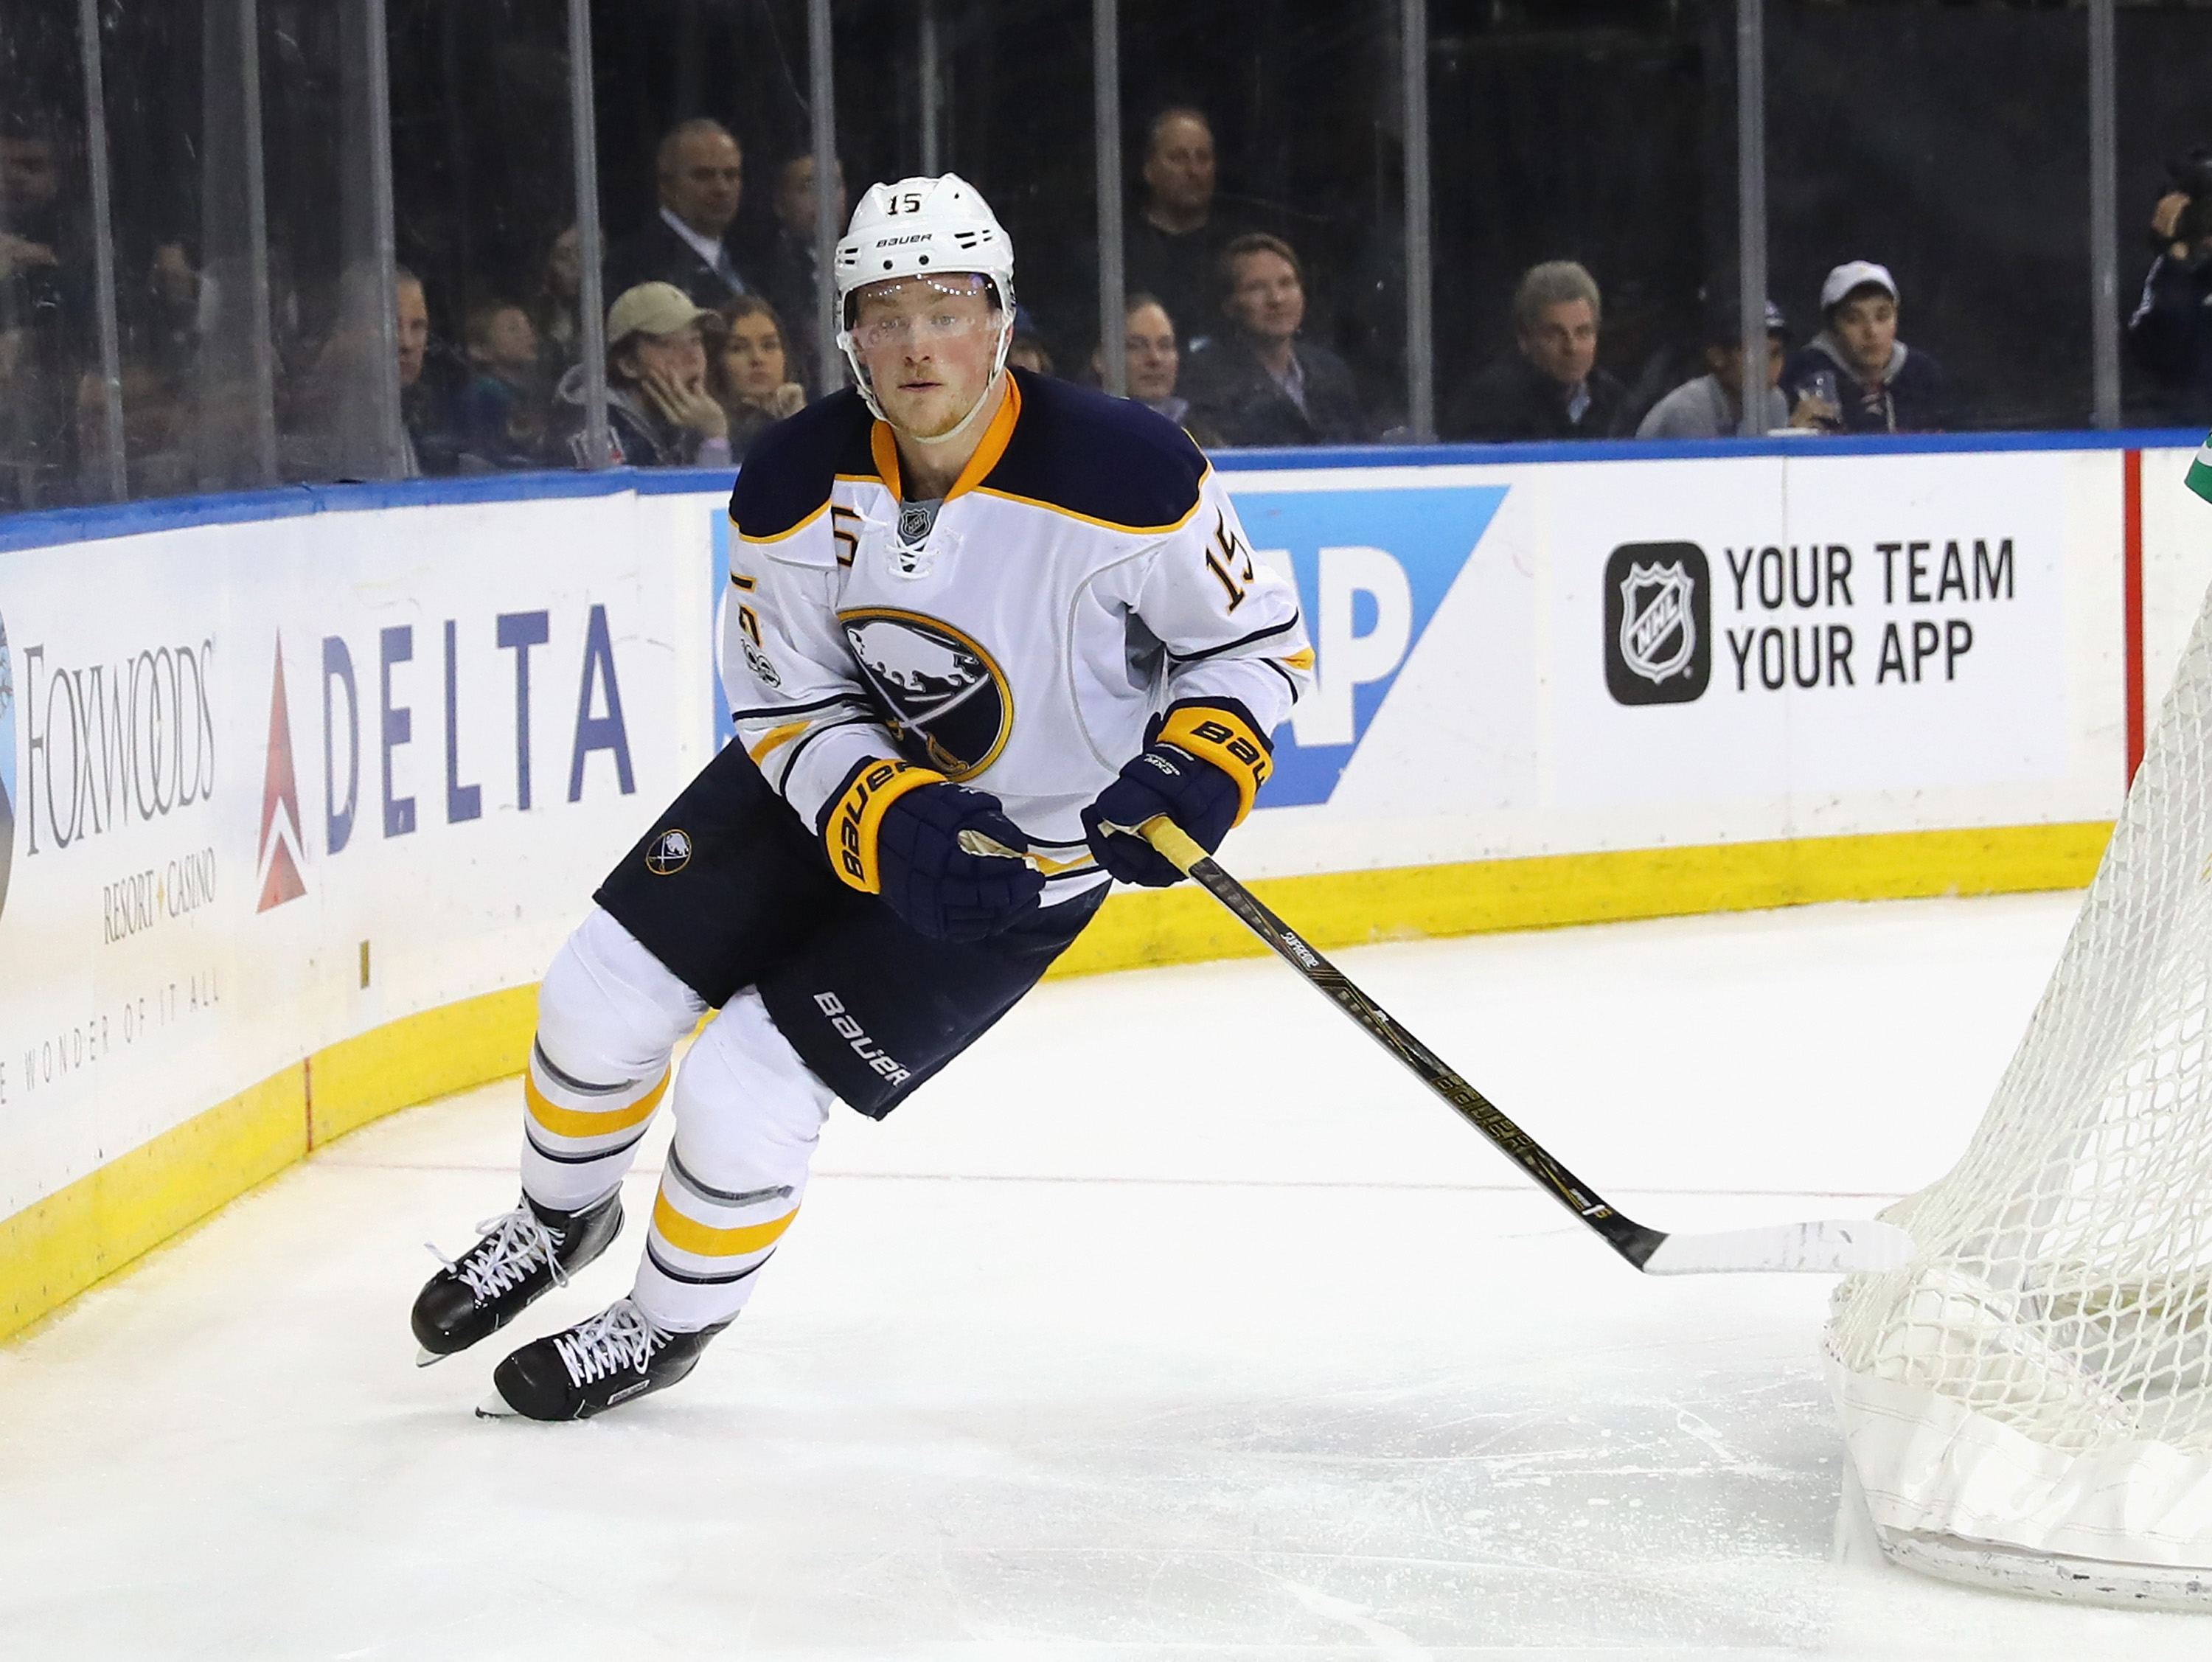 Jack Eichel believes he is just scratching the surface of what he can do. (Getty Images)